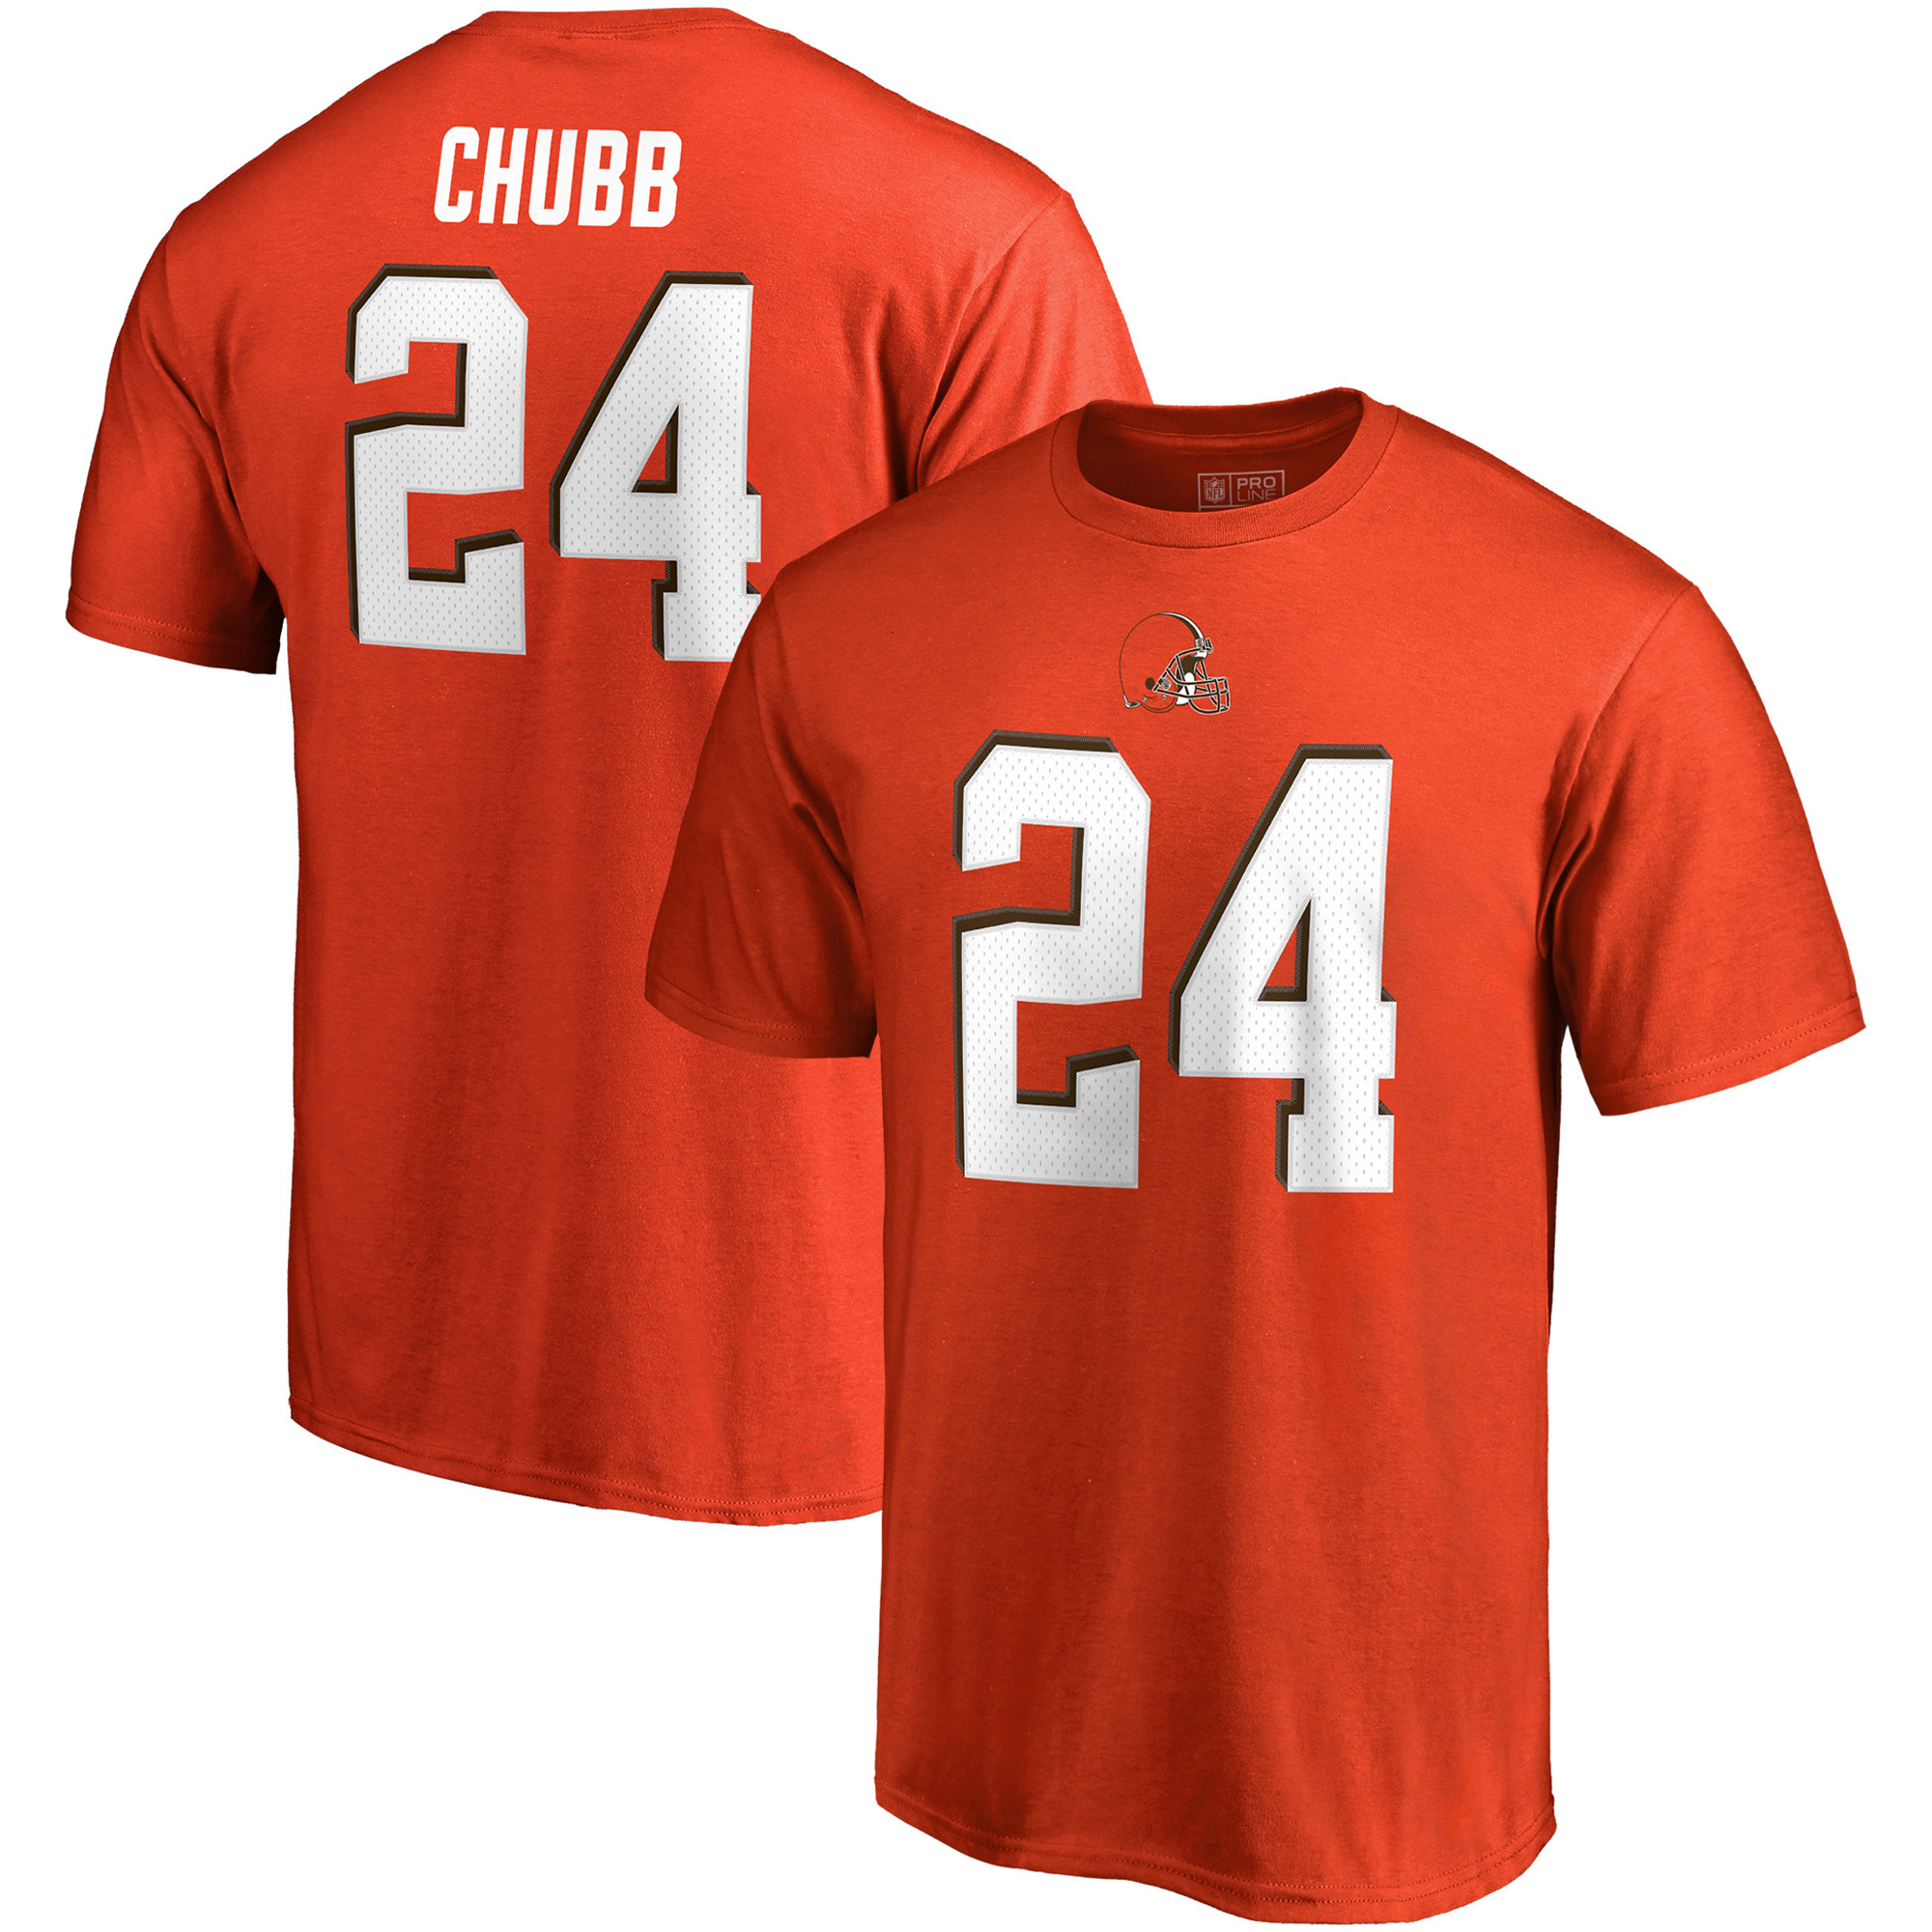 Nick Chubb Cleveland Browns NFL Pro Line by Fanatics Branded Authentic Stack Name & Number T-Shirt - Orange